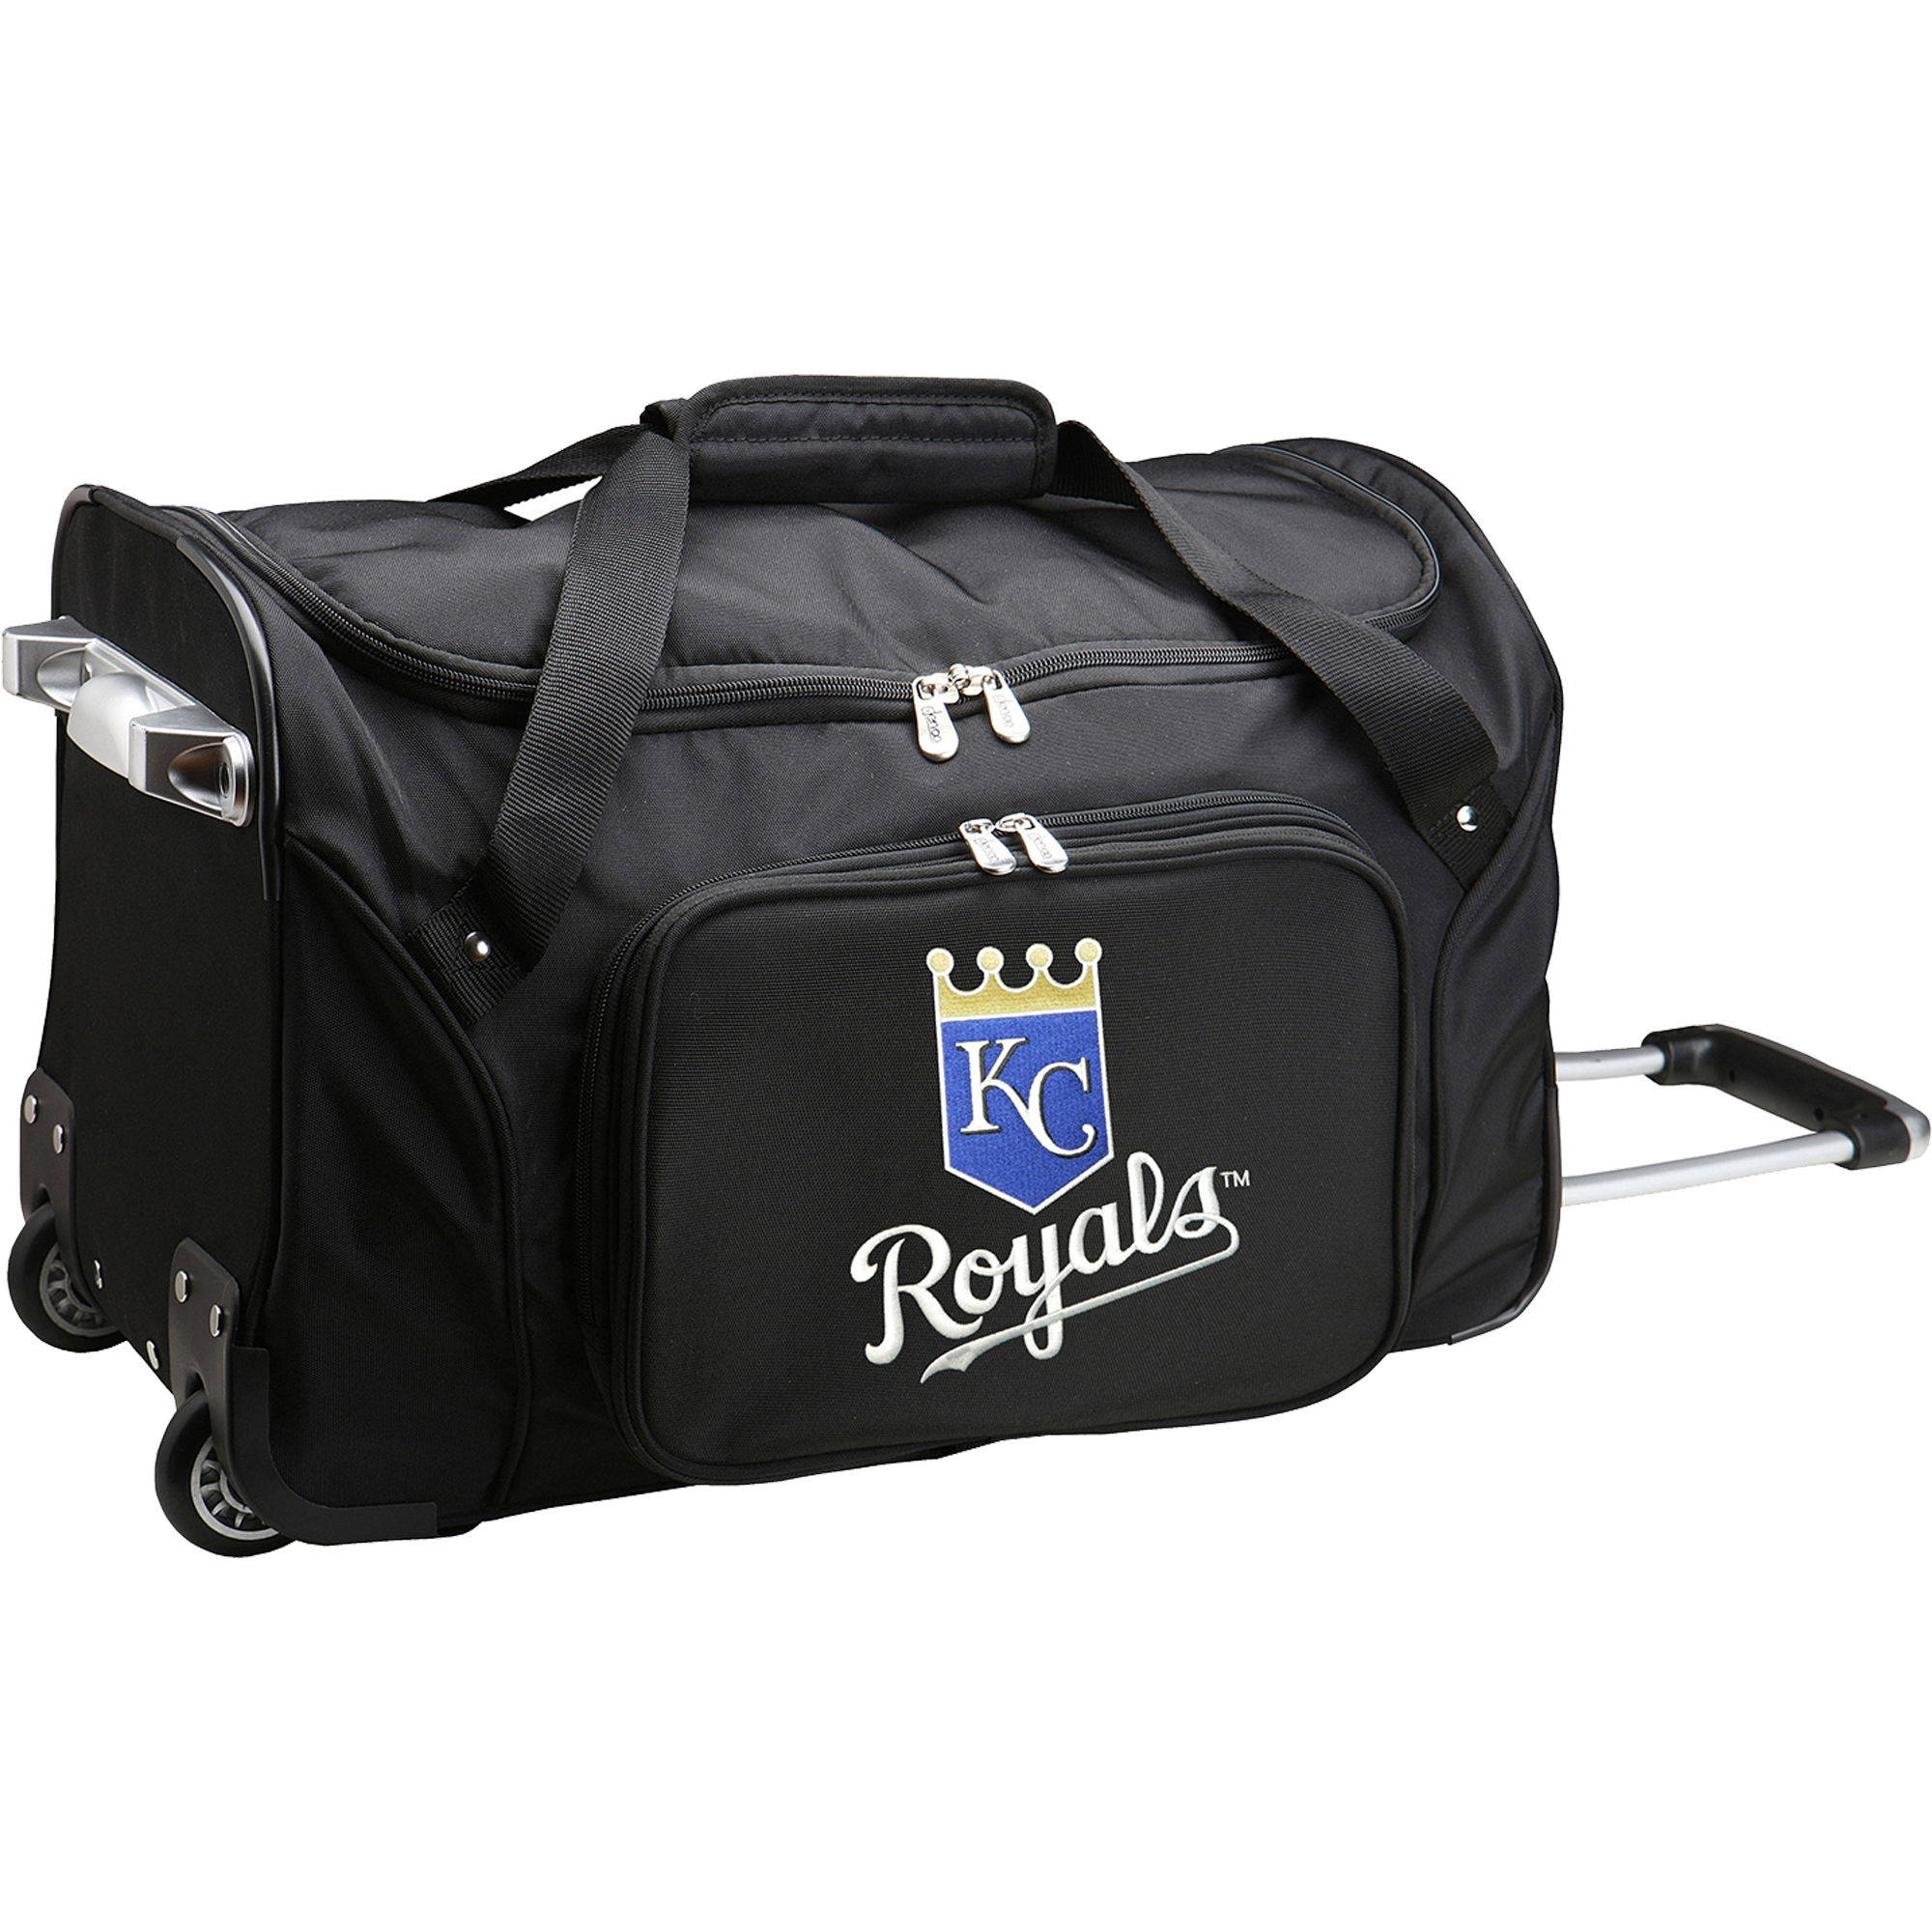 "Kansas City Royals 22"" 2-Wheeled Duffel Bag - Black - No Size"